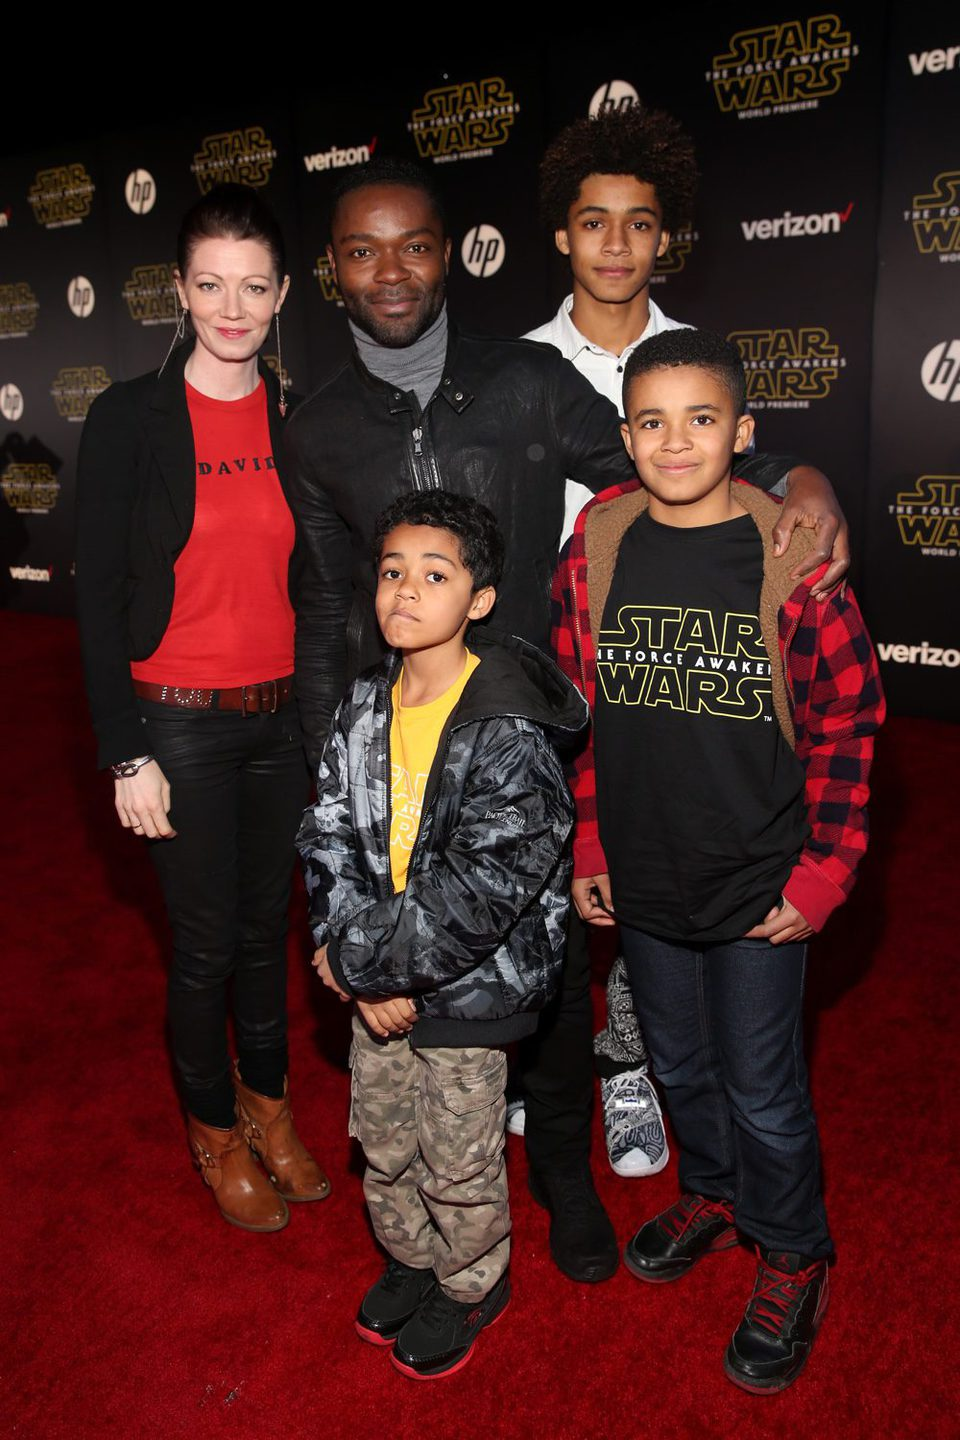 David Oyelowo in the 'Star Wars: The Force Awakens' World Premiere